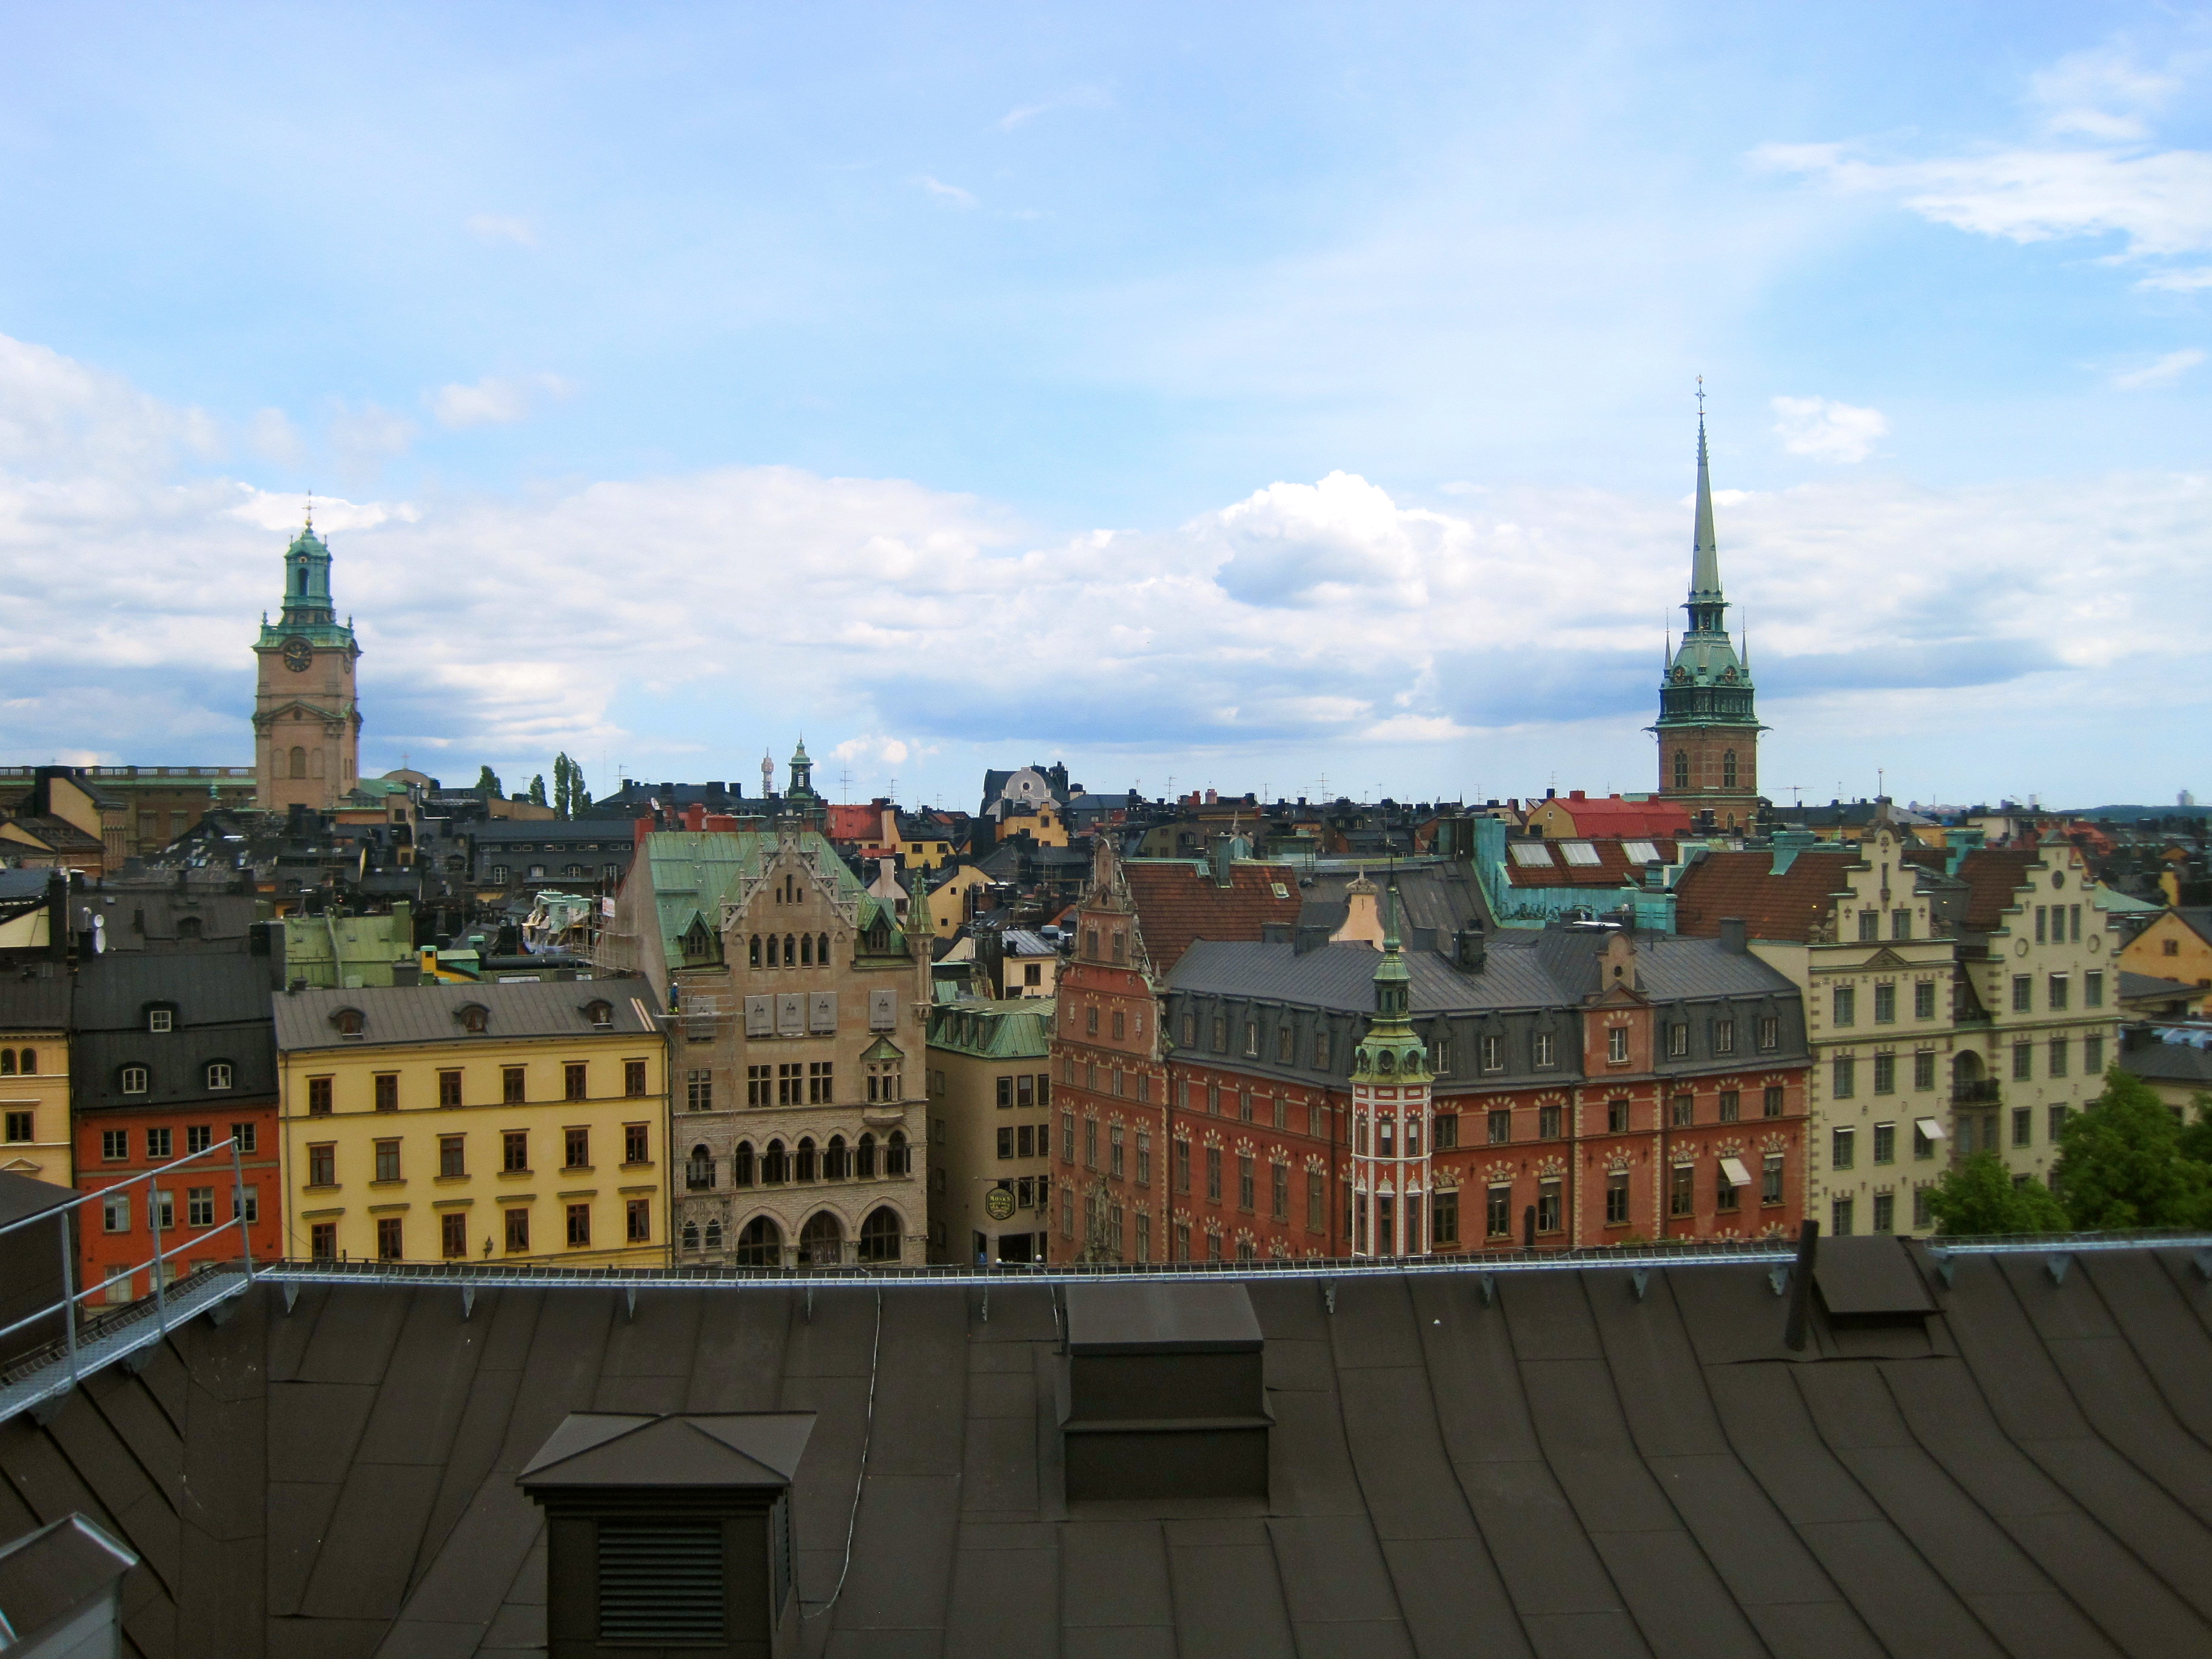 Cheating Death on Stockholm's Rooftops